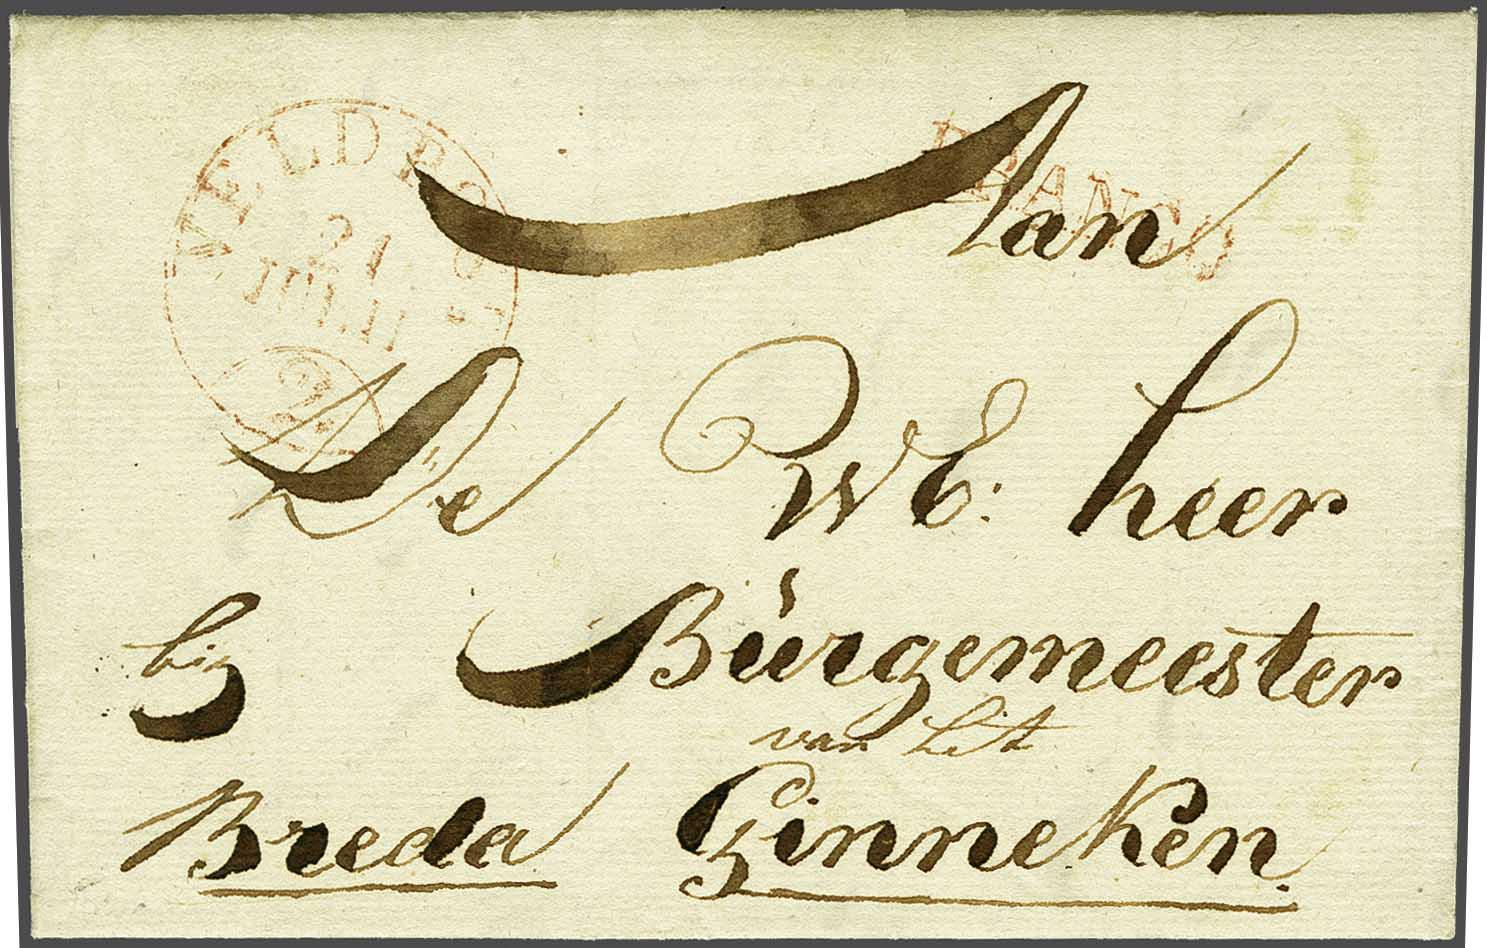 Lot 1708 - Netherlands and former colonies Netherlands -  Corinphila Veilingen Auction 245-246 Day 3 - Netherlands and former colonies - Single lots, Collections and lots, Boxes and literature